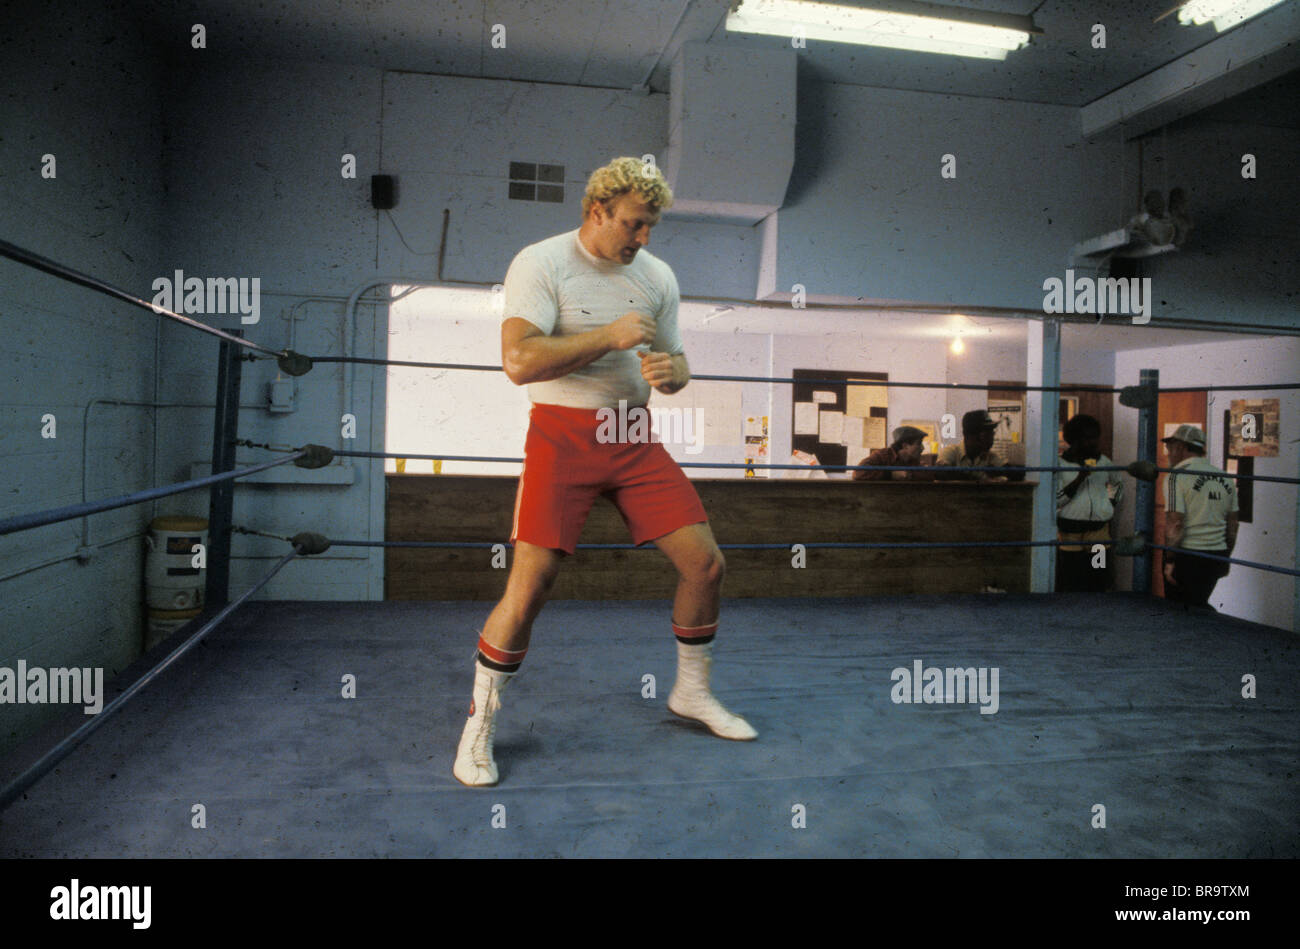 Former boxing heavyweight champion Joe Bugner works in Gold's Gym in Santa Monica in the 1980s - Stock Image